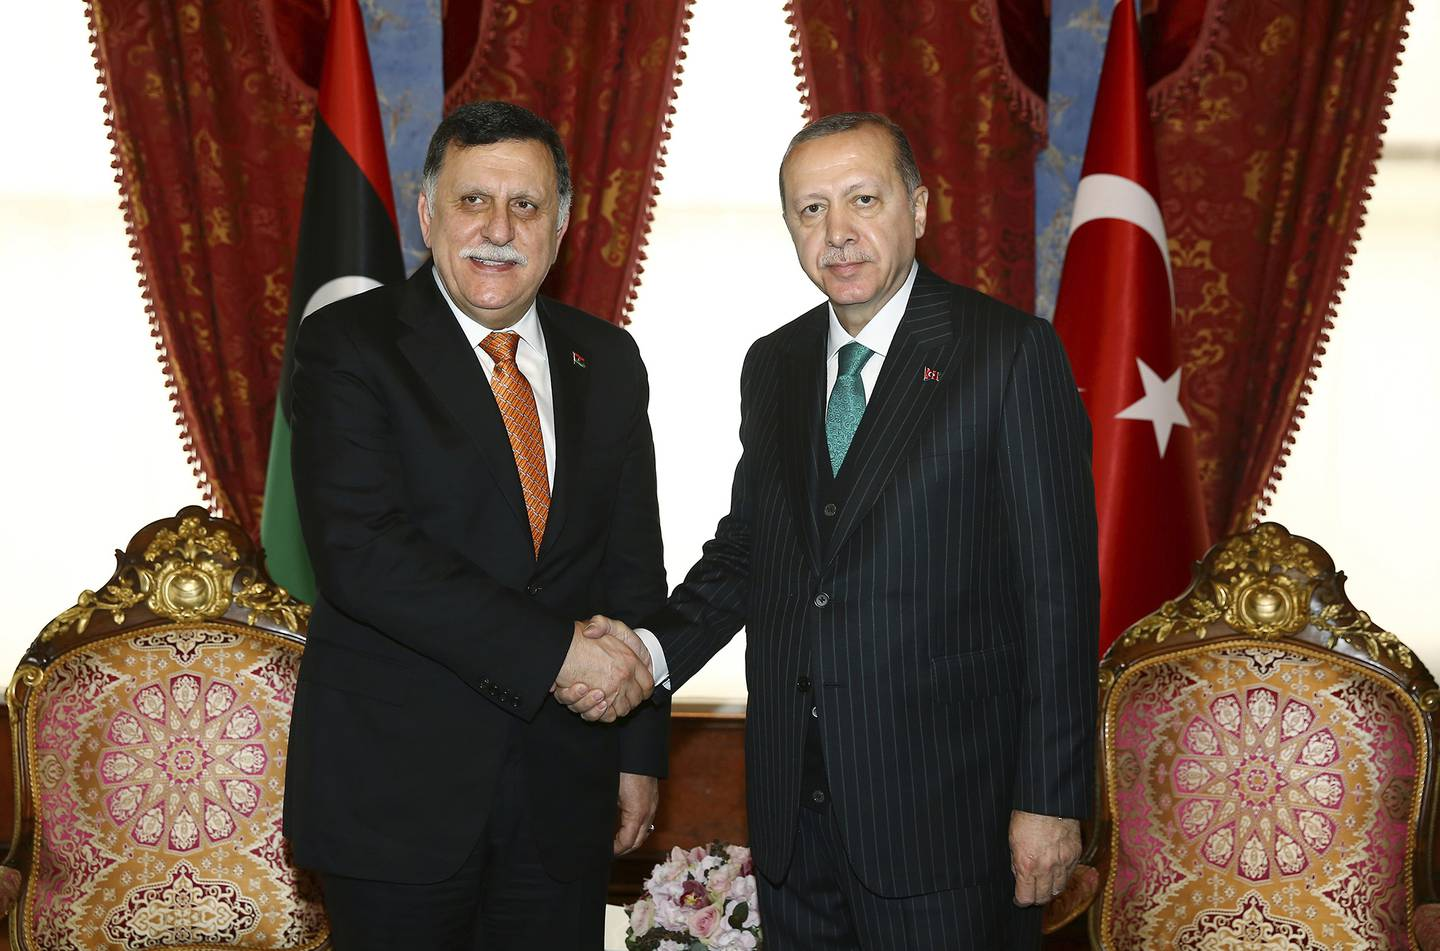 In this Feb. 26, 2018, file photo, Turkish President Recep Tayyip Erdogan, right, shakes hands with Fayez al-Sarraj, the chairman of the Libyan Presidential Council, shortly before departing for a five-day African tour, in Istanbul.